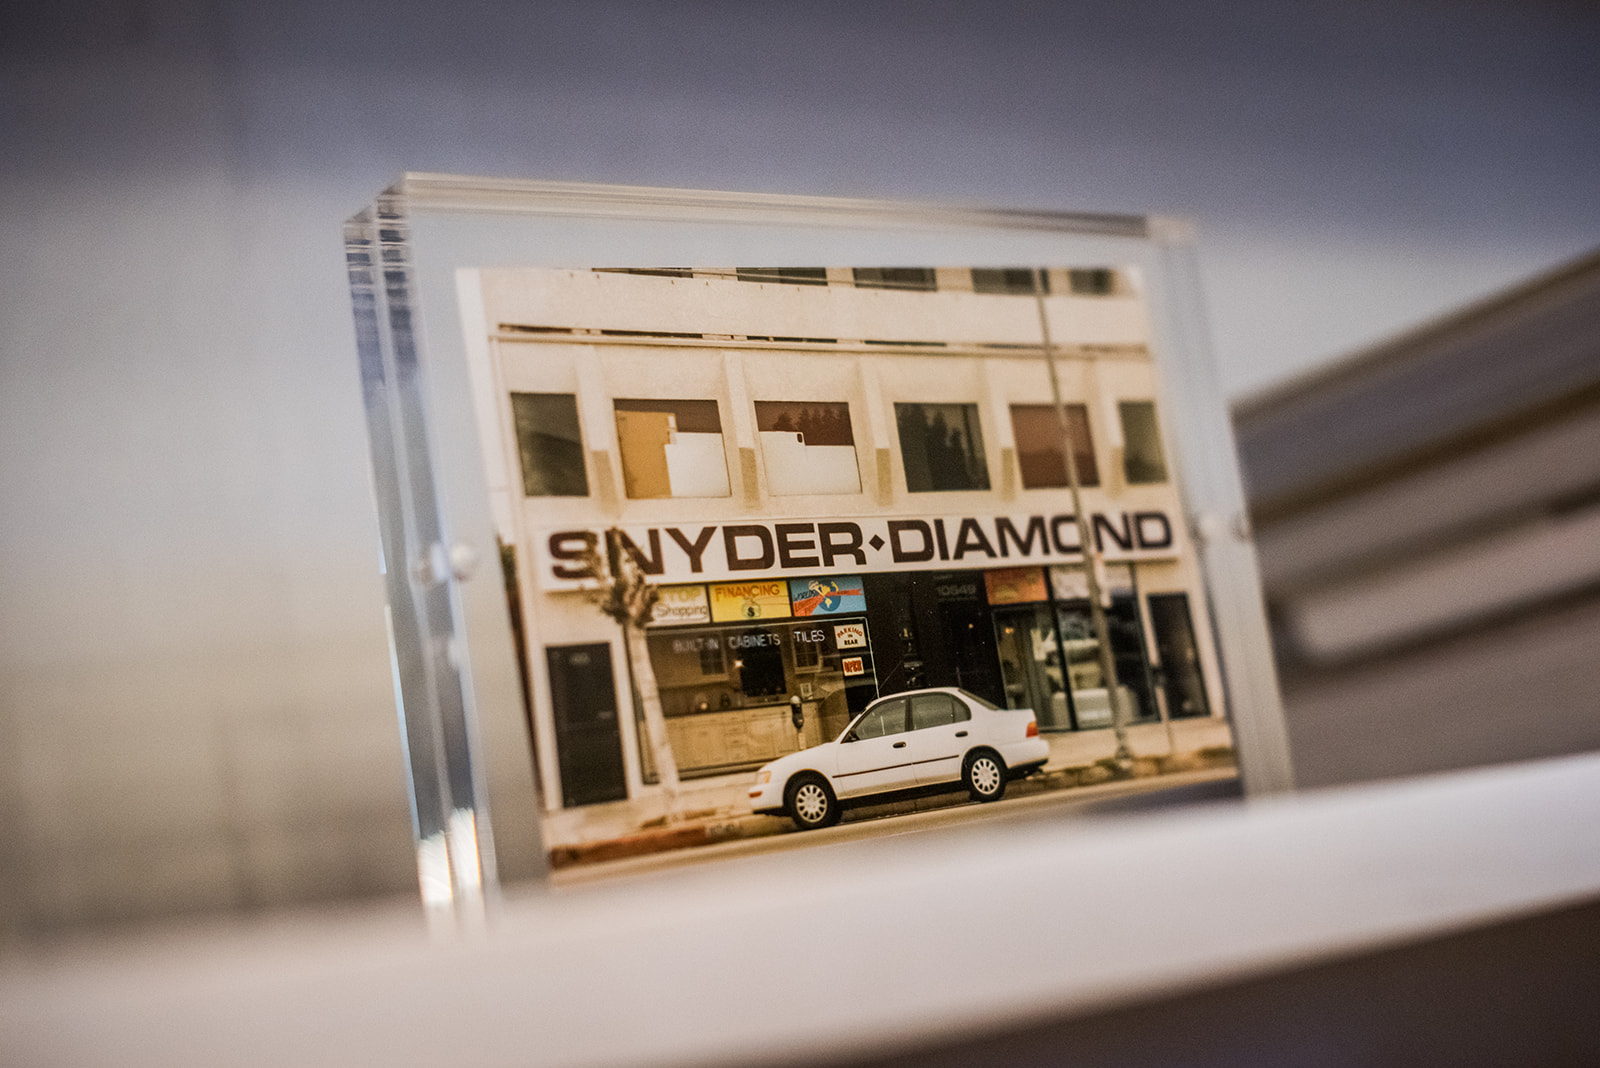 Snyder-Diamond-0033.jpg